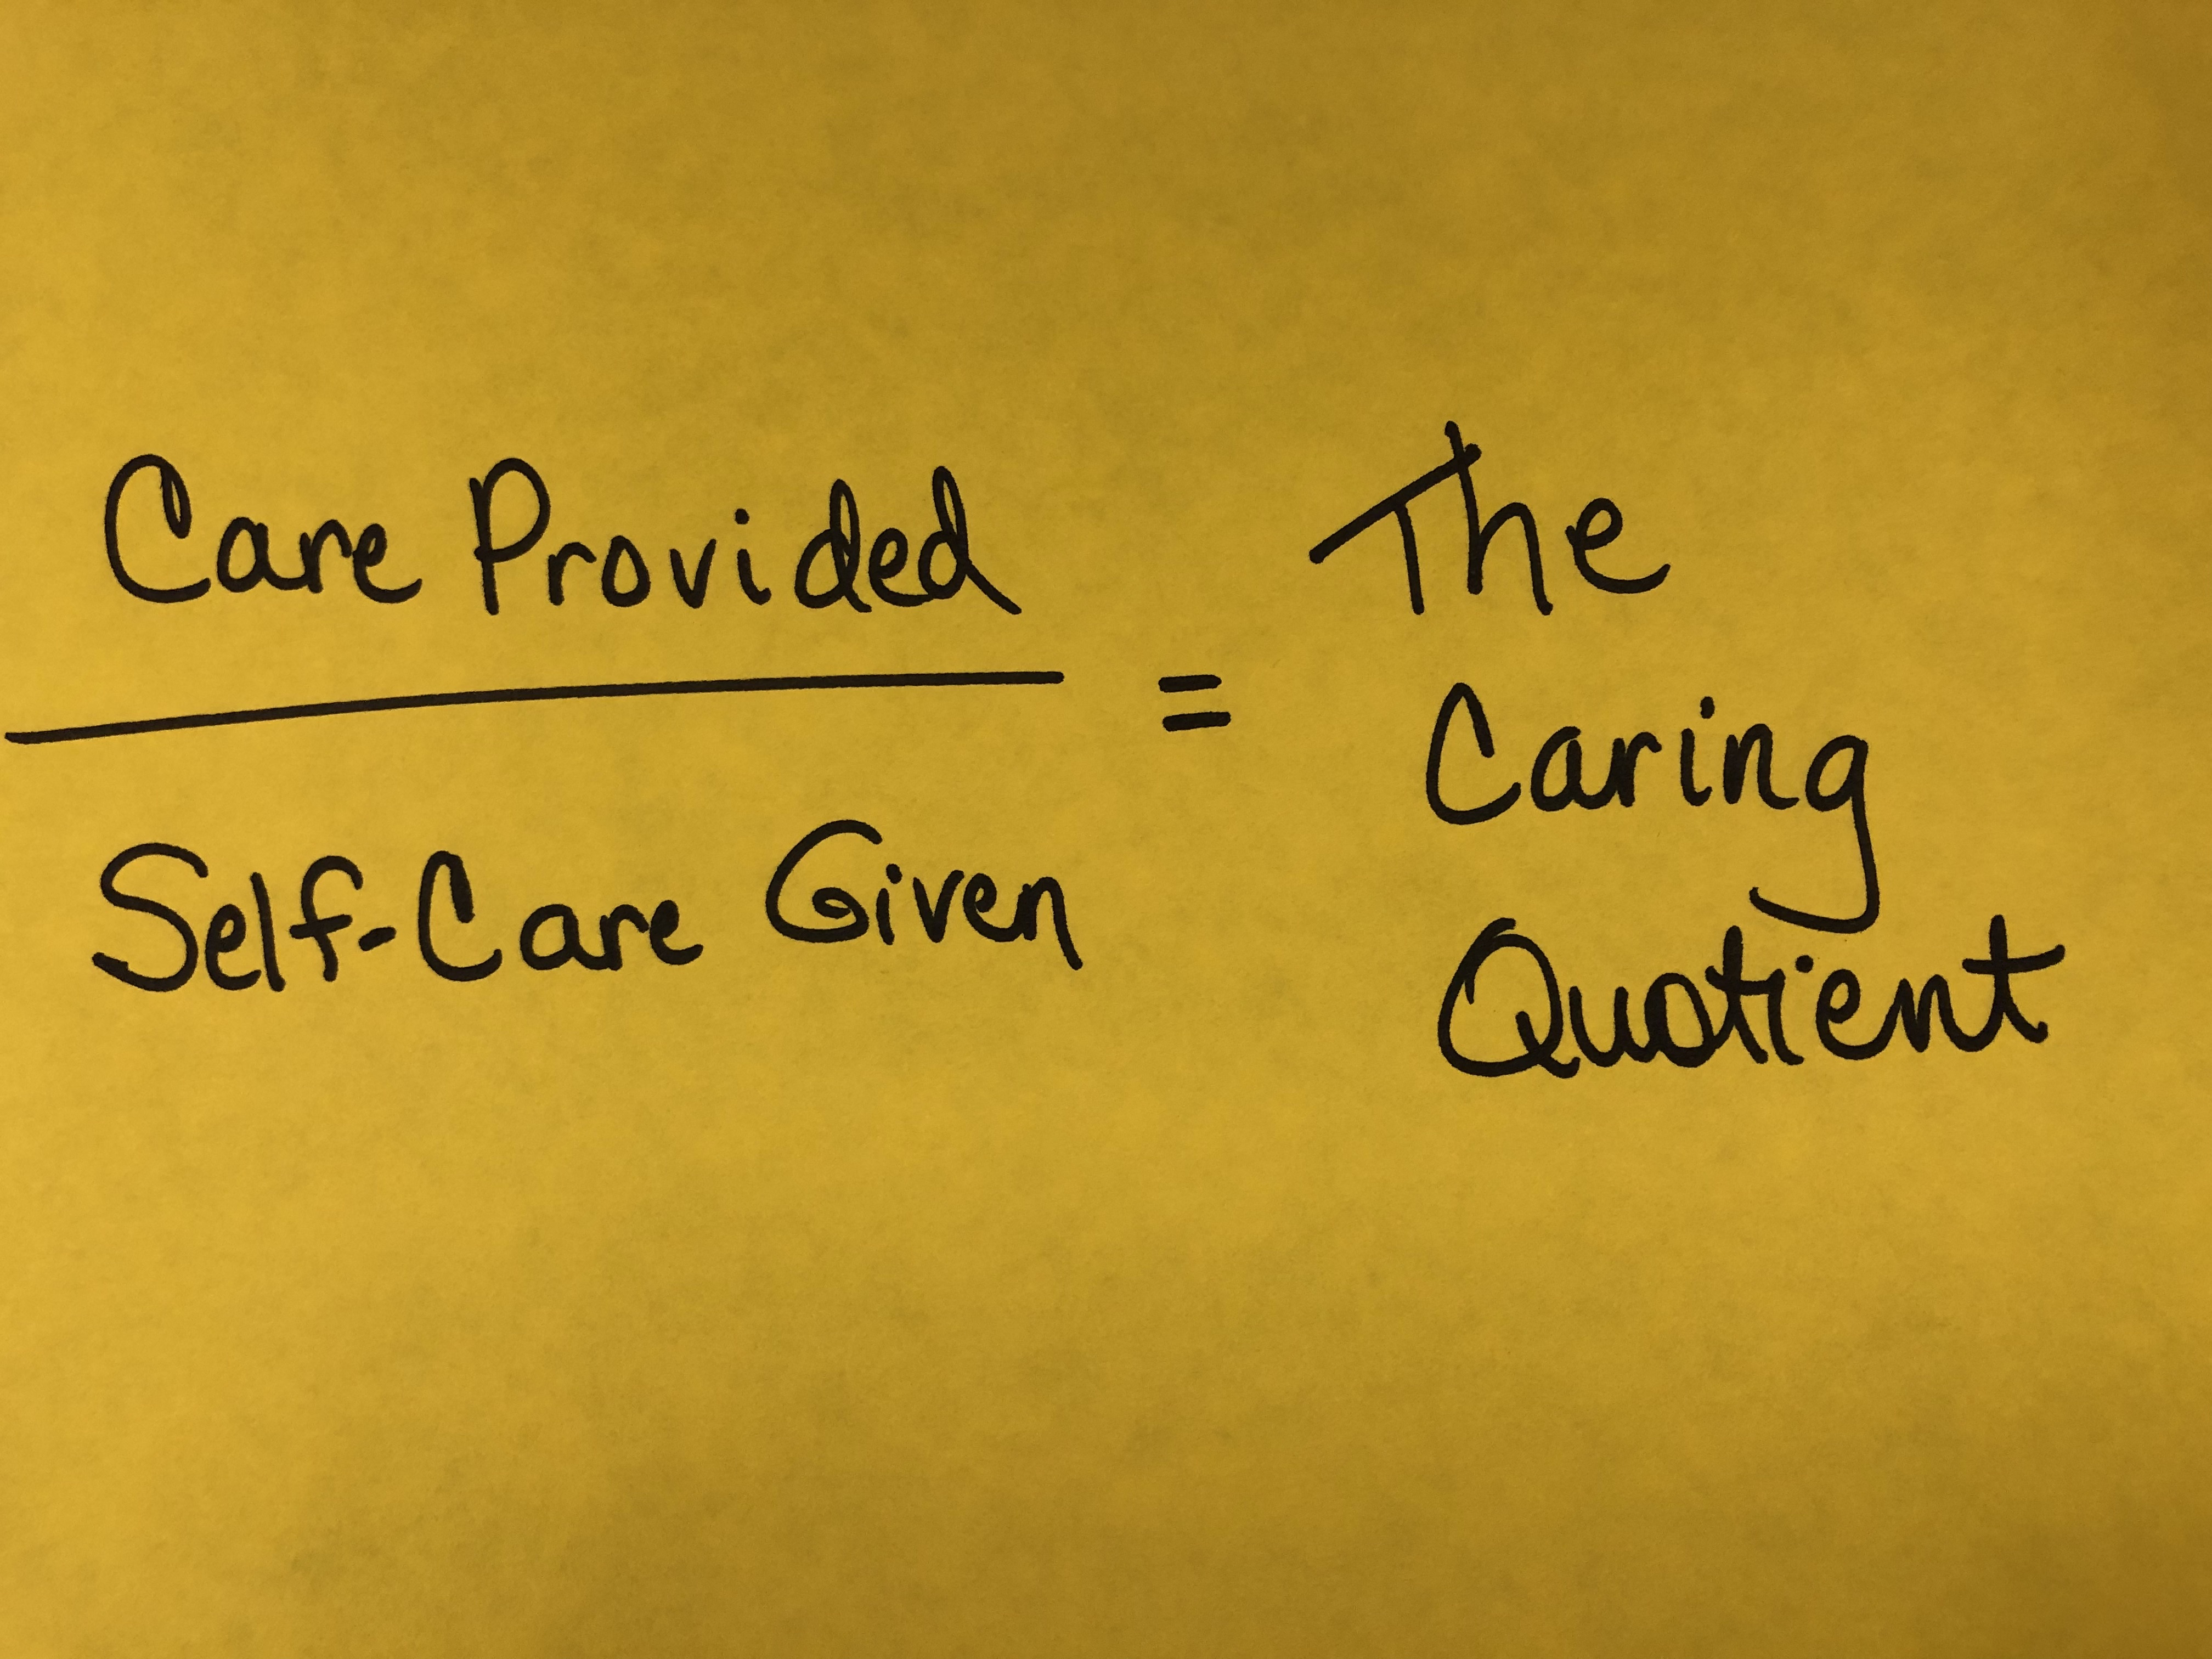 Caring Quotient-Part Three: Life-Hacks for Long Shifts